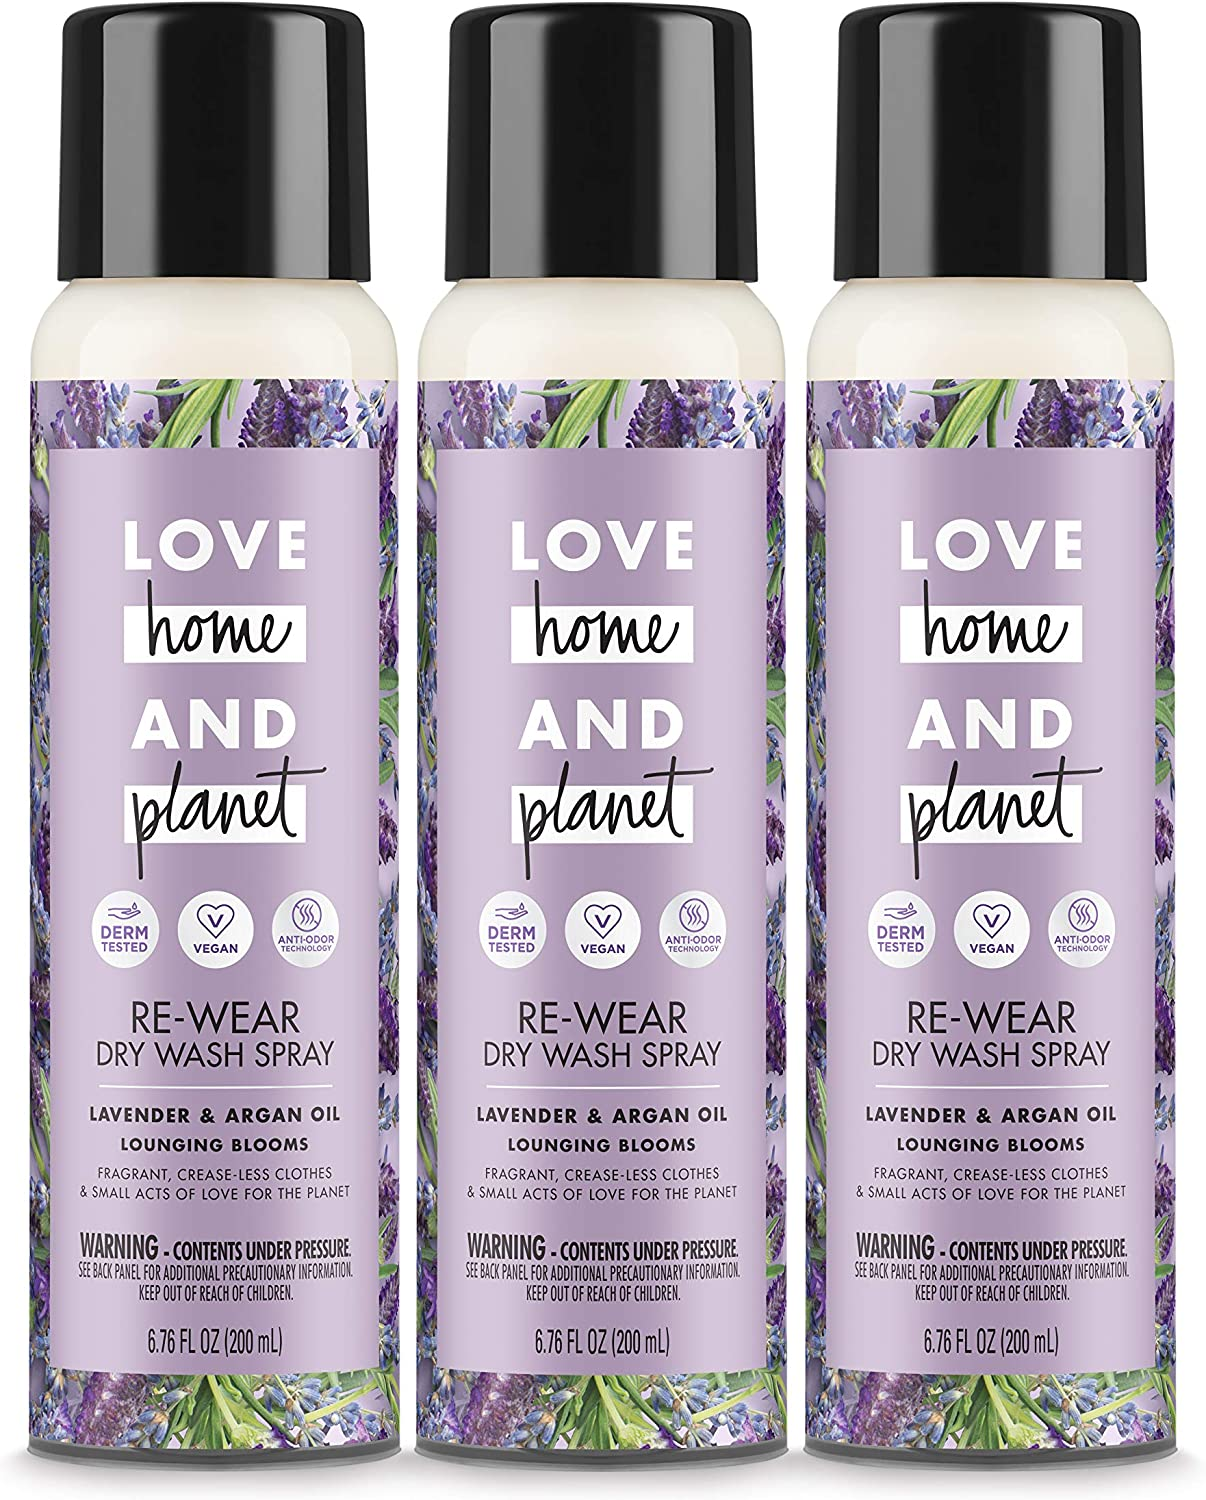 Love Home and Planet Dry Wash Spray Lavender & Argan Oil, 6.76 Fl Oz, Pack of 3